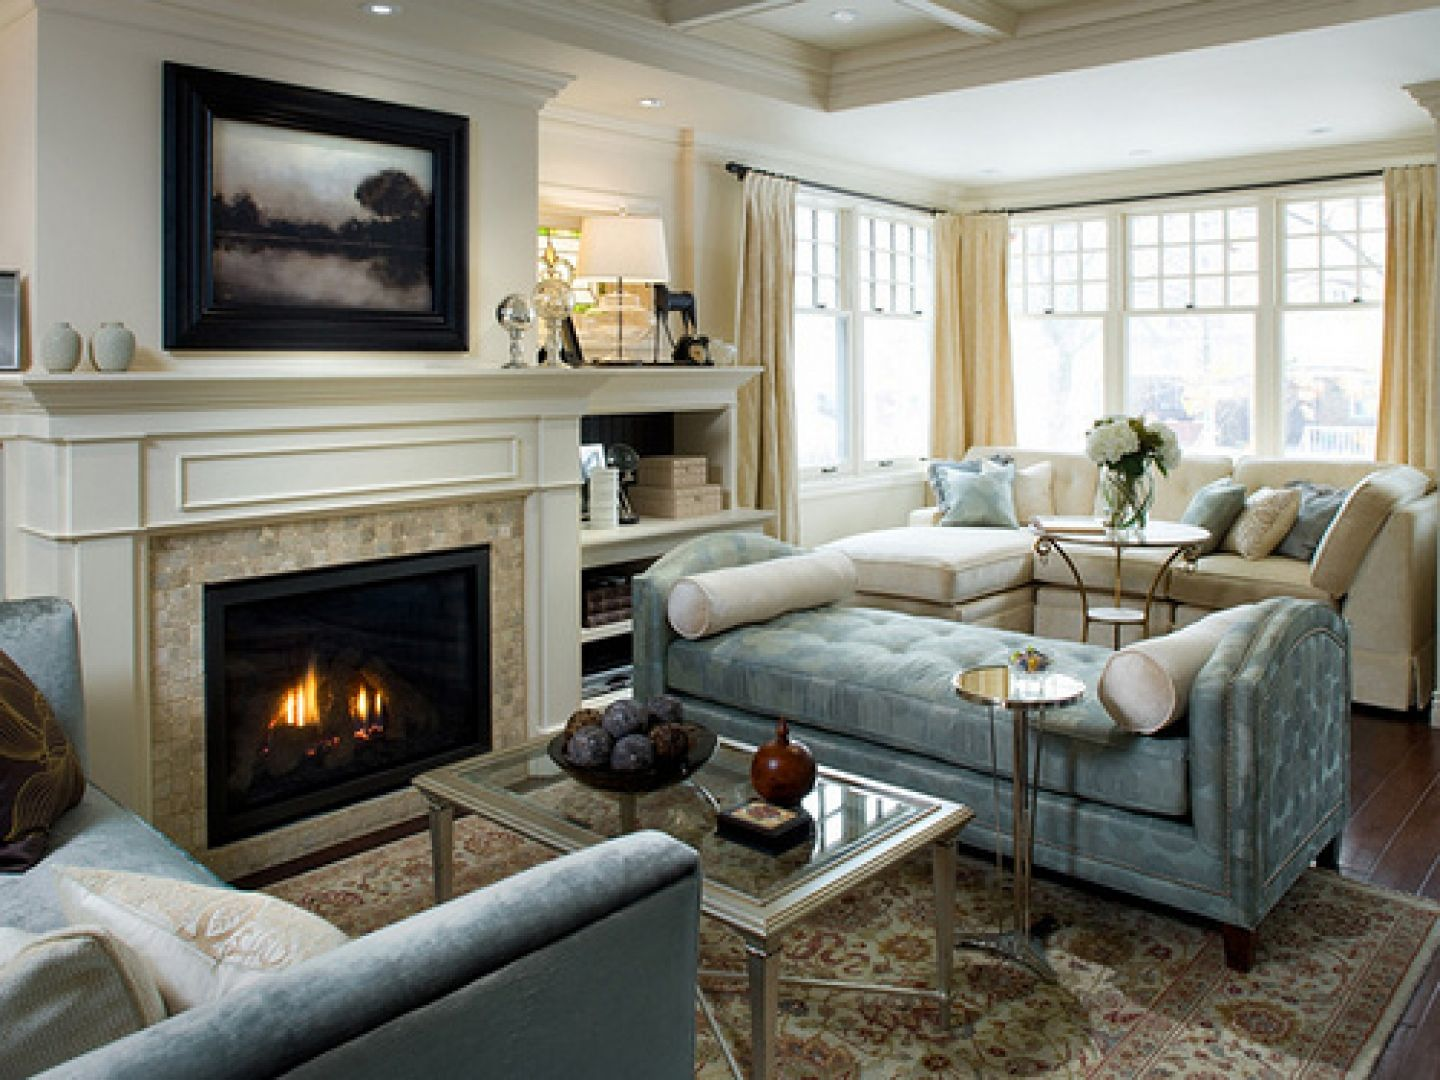 Living Room Candice Olson Living Room Design Ideas 1000 images about candice olson on pinterest living rooms room designs and fireplaces